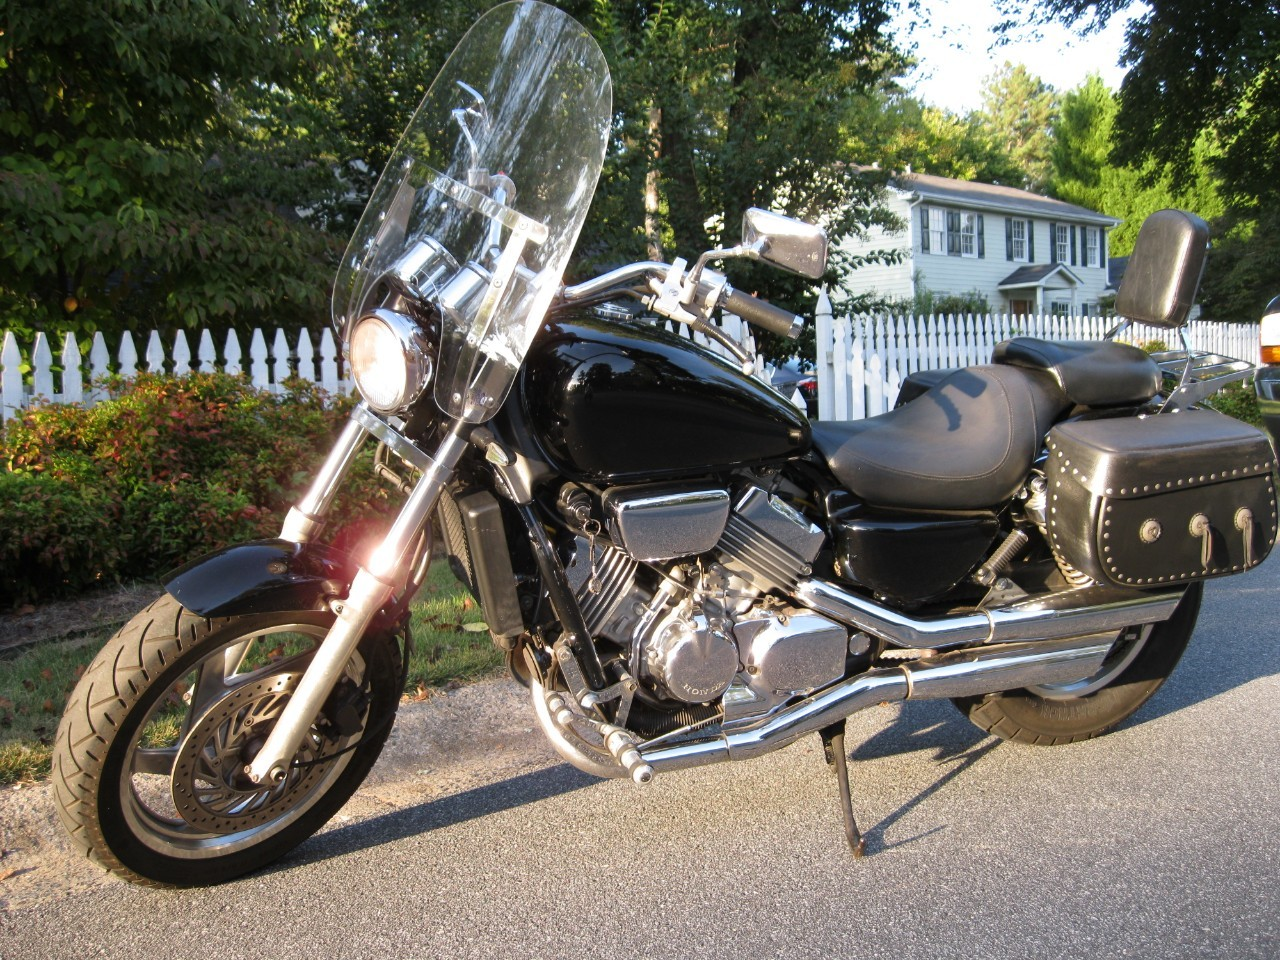 Marietta, GA - S For Sale - S Motorcycle,Trailers